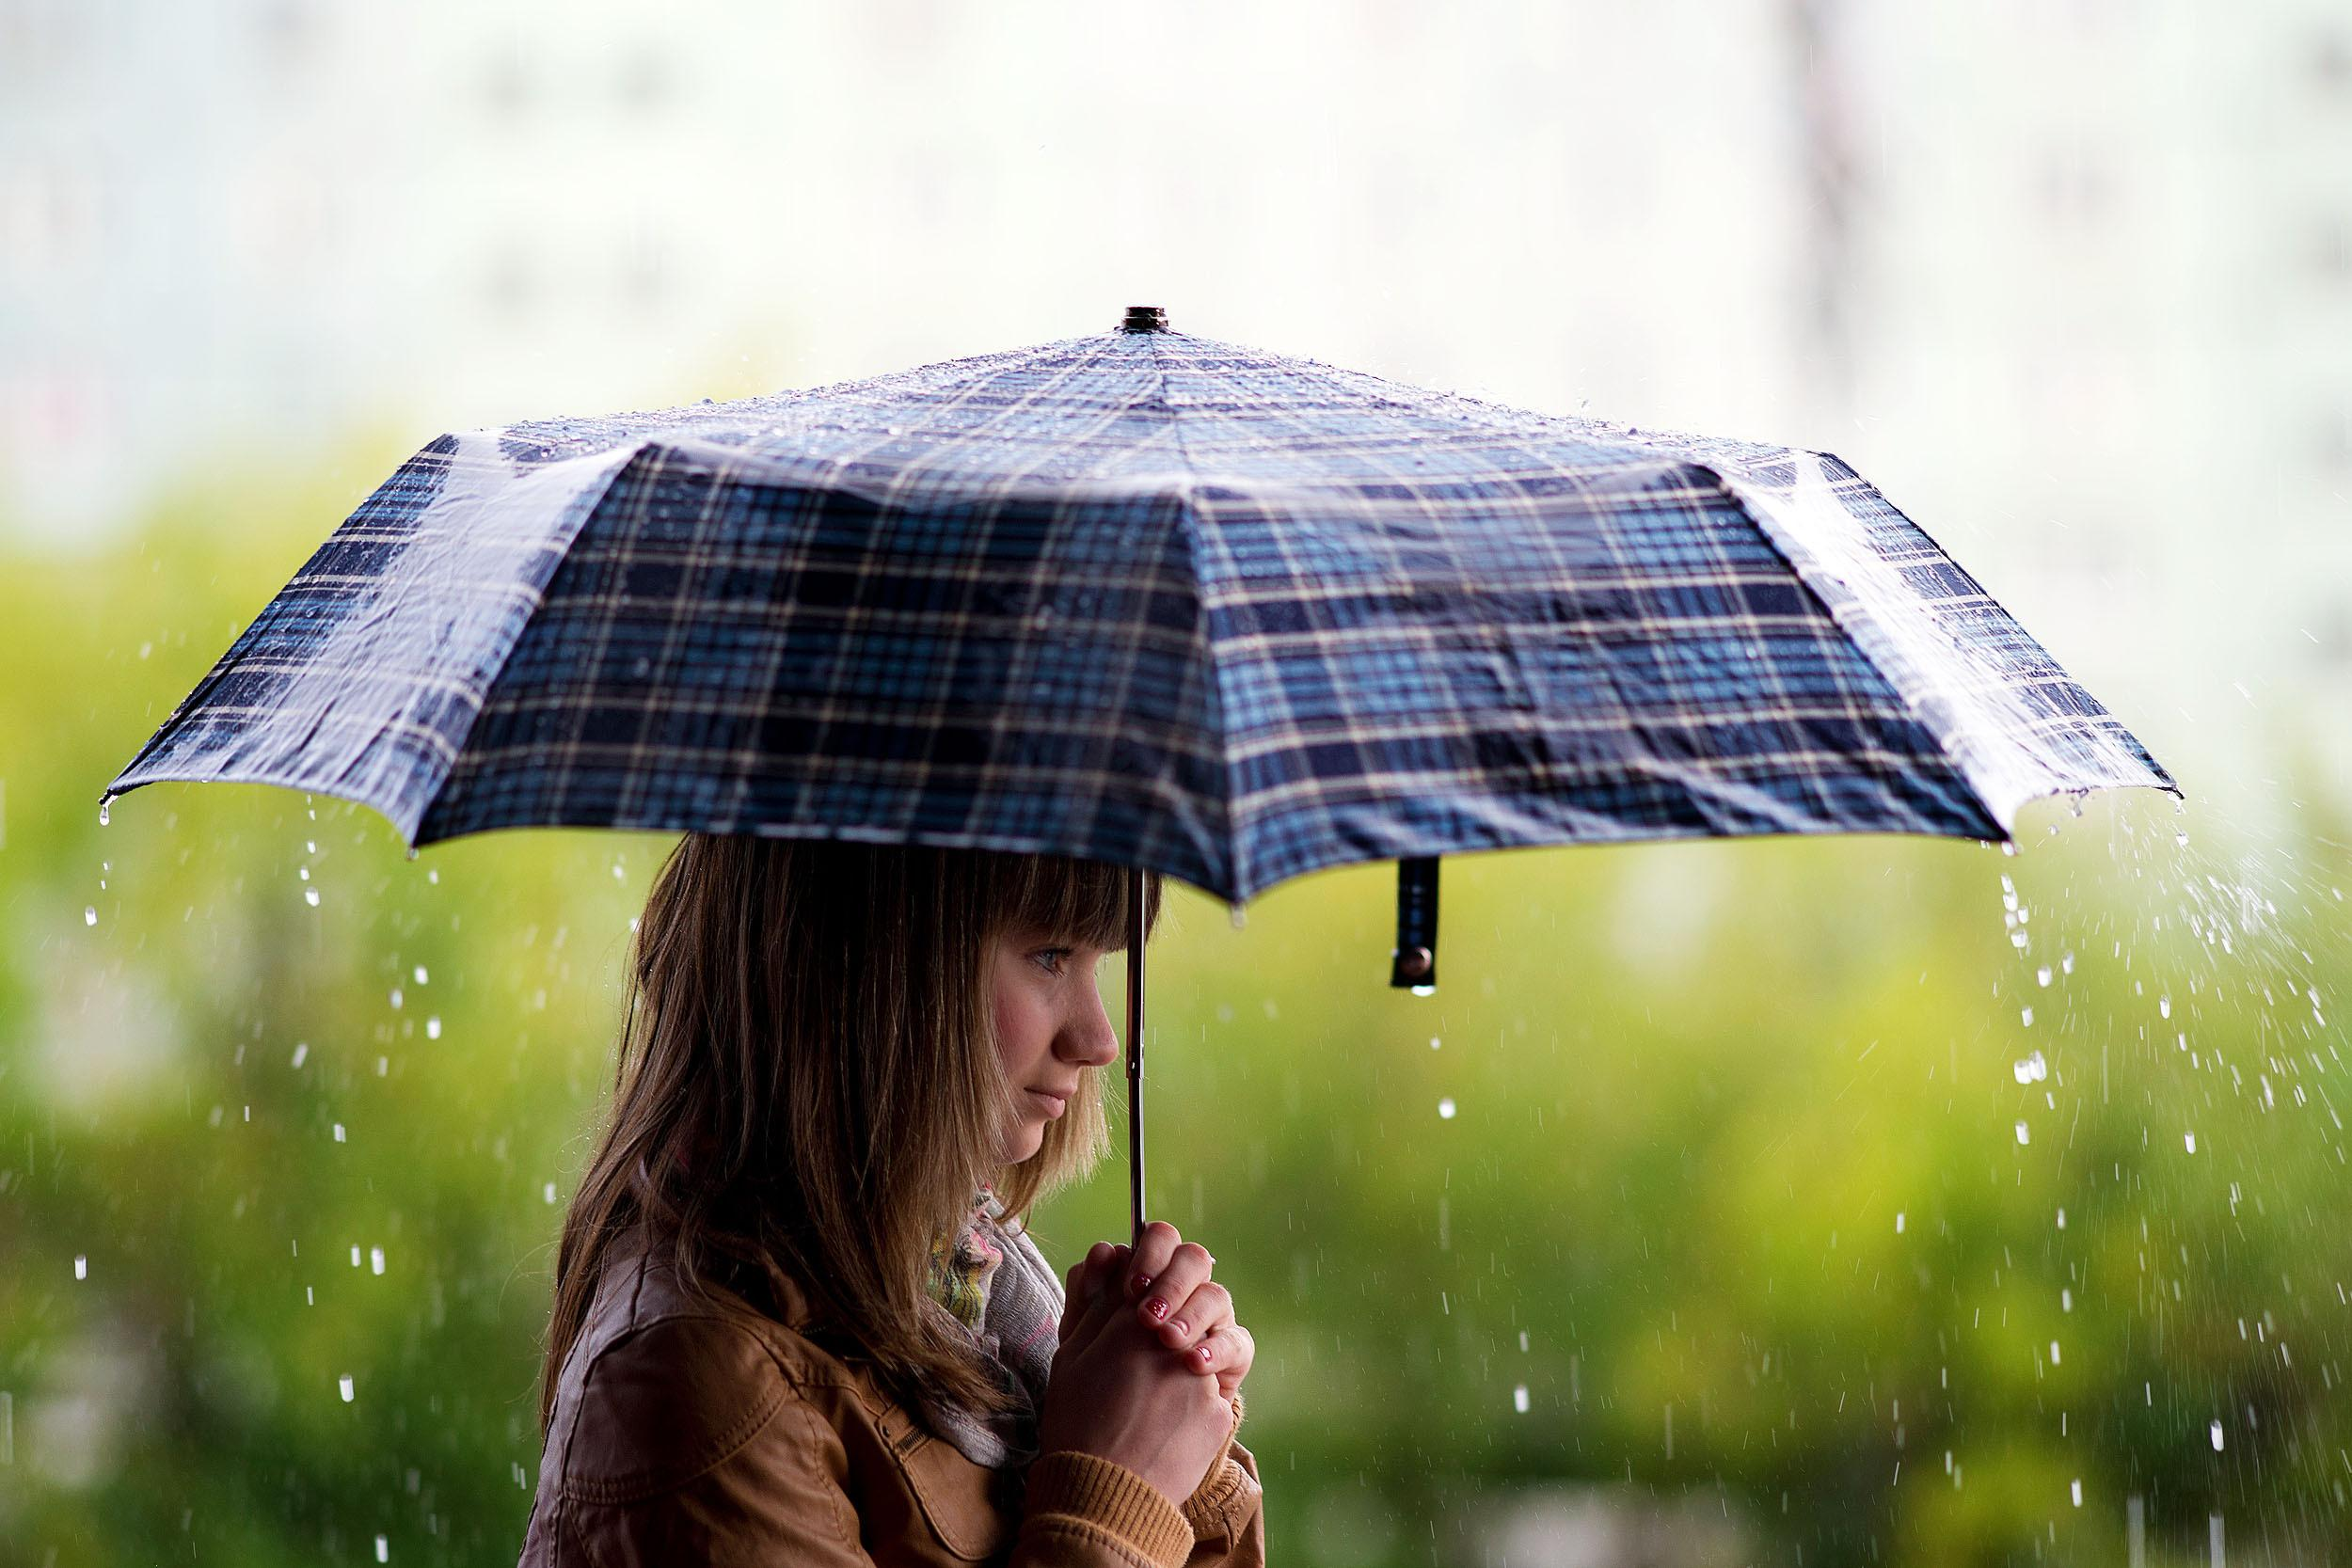 Download Days Done Wallpapers To Your Cell Phone: Download Girl Holding Umbrella Rainy Day